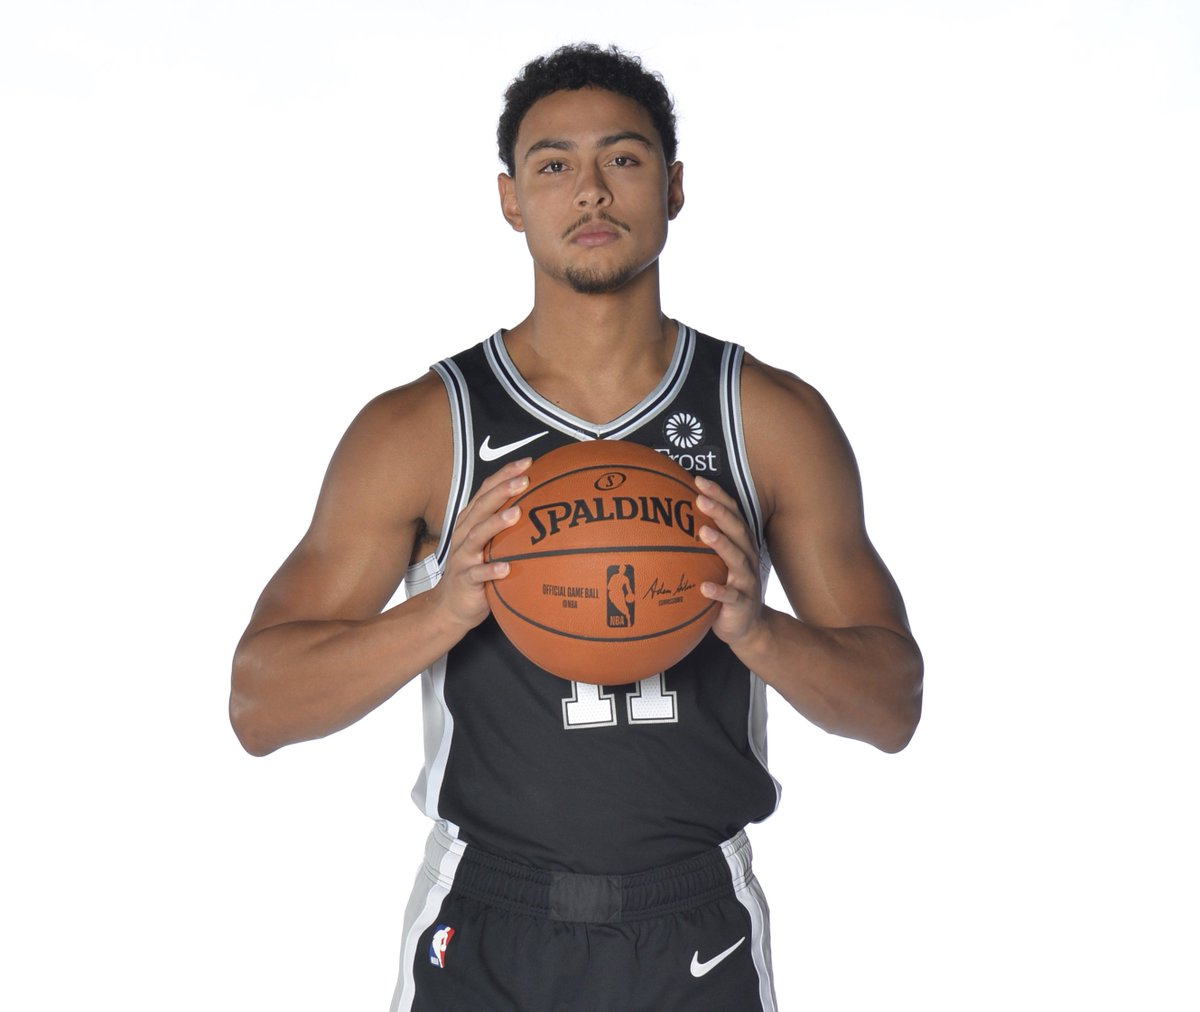 #RT @NBA: Join us in wishing @BrynjForbes of the @spurs a HAPPY 26th BIRTHDAY! #NBABDAY